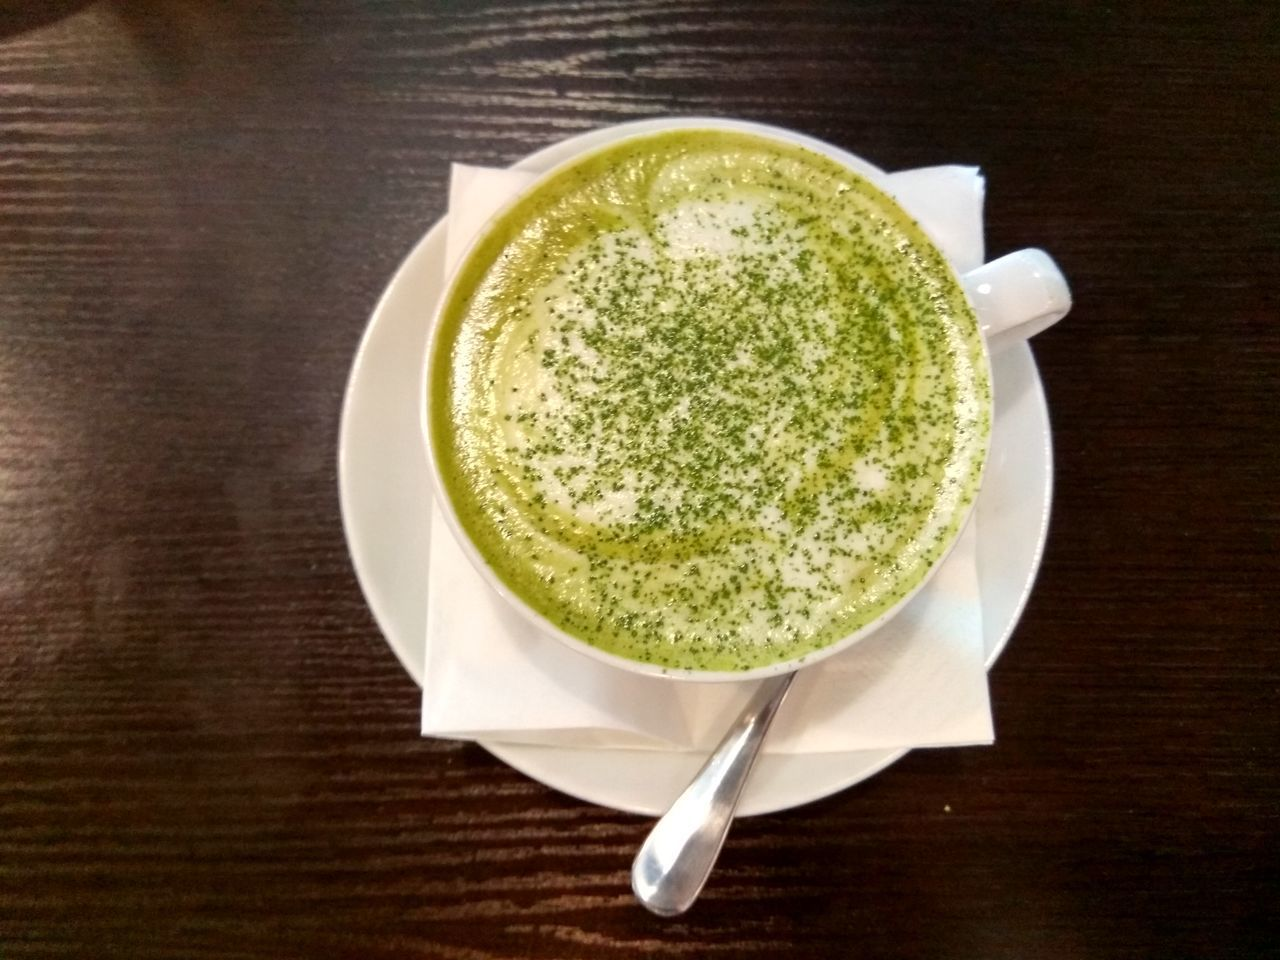 Drink Green Tea Studio Shot Food And Drink Matcha Tea Green Color Close-up Healthy Eating Indoors  No People Cultures High Angle View Tea Ceremony Refreshment Freshness Tea - Hot Drink Ready-to-eat